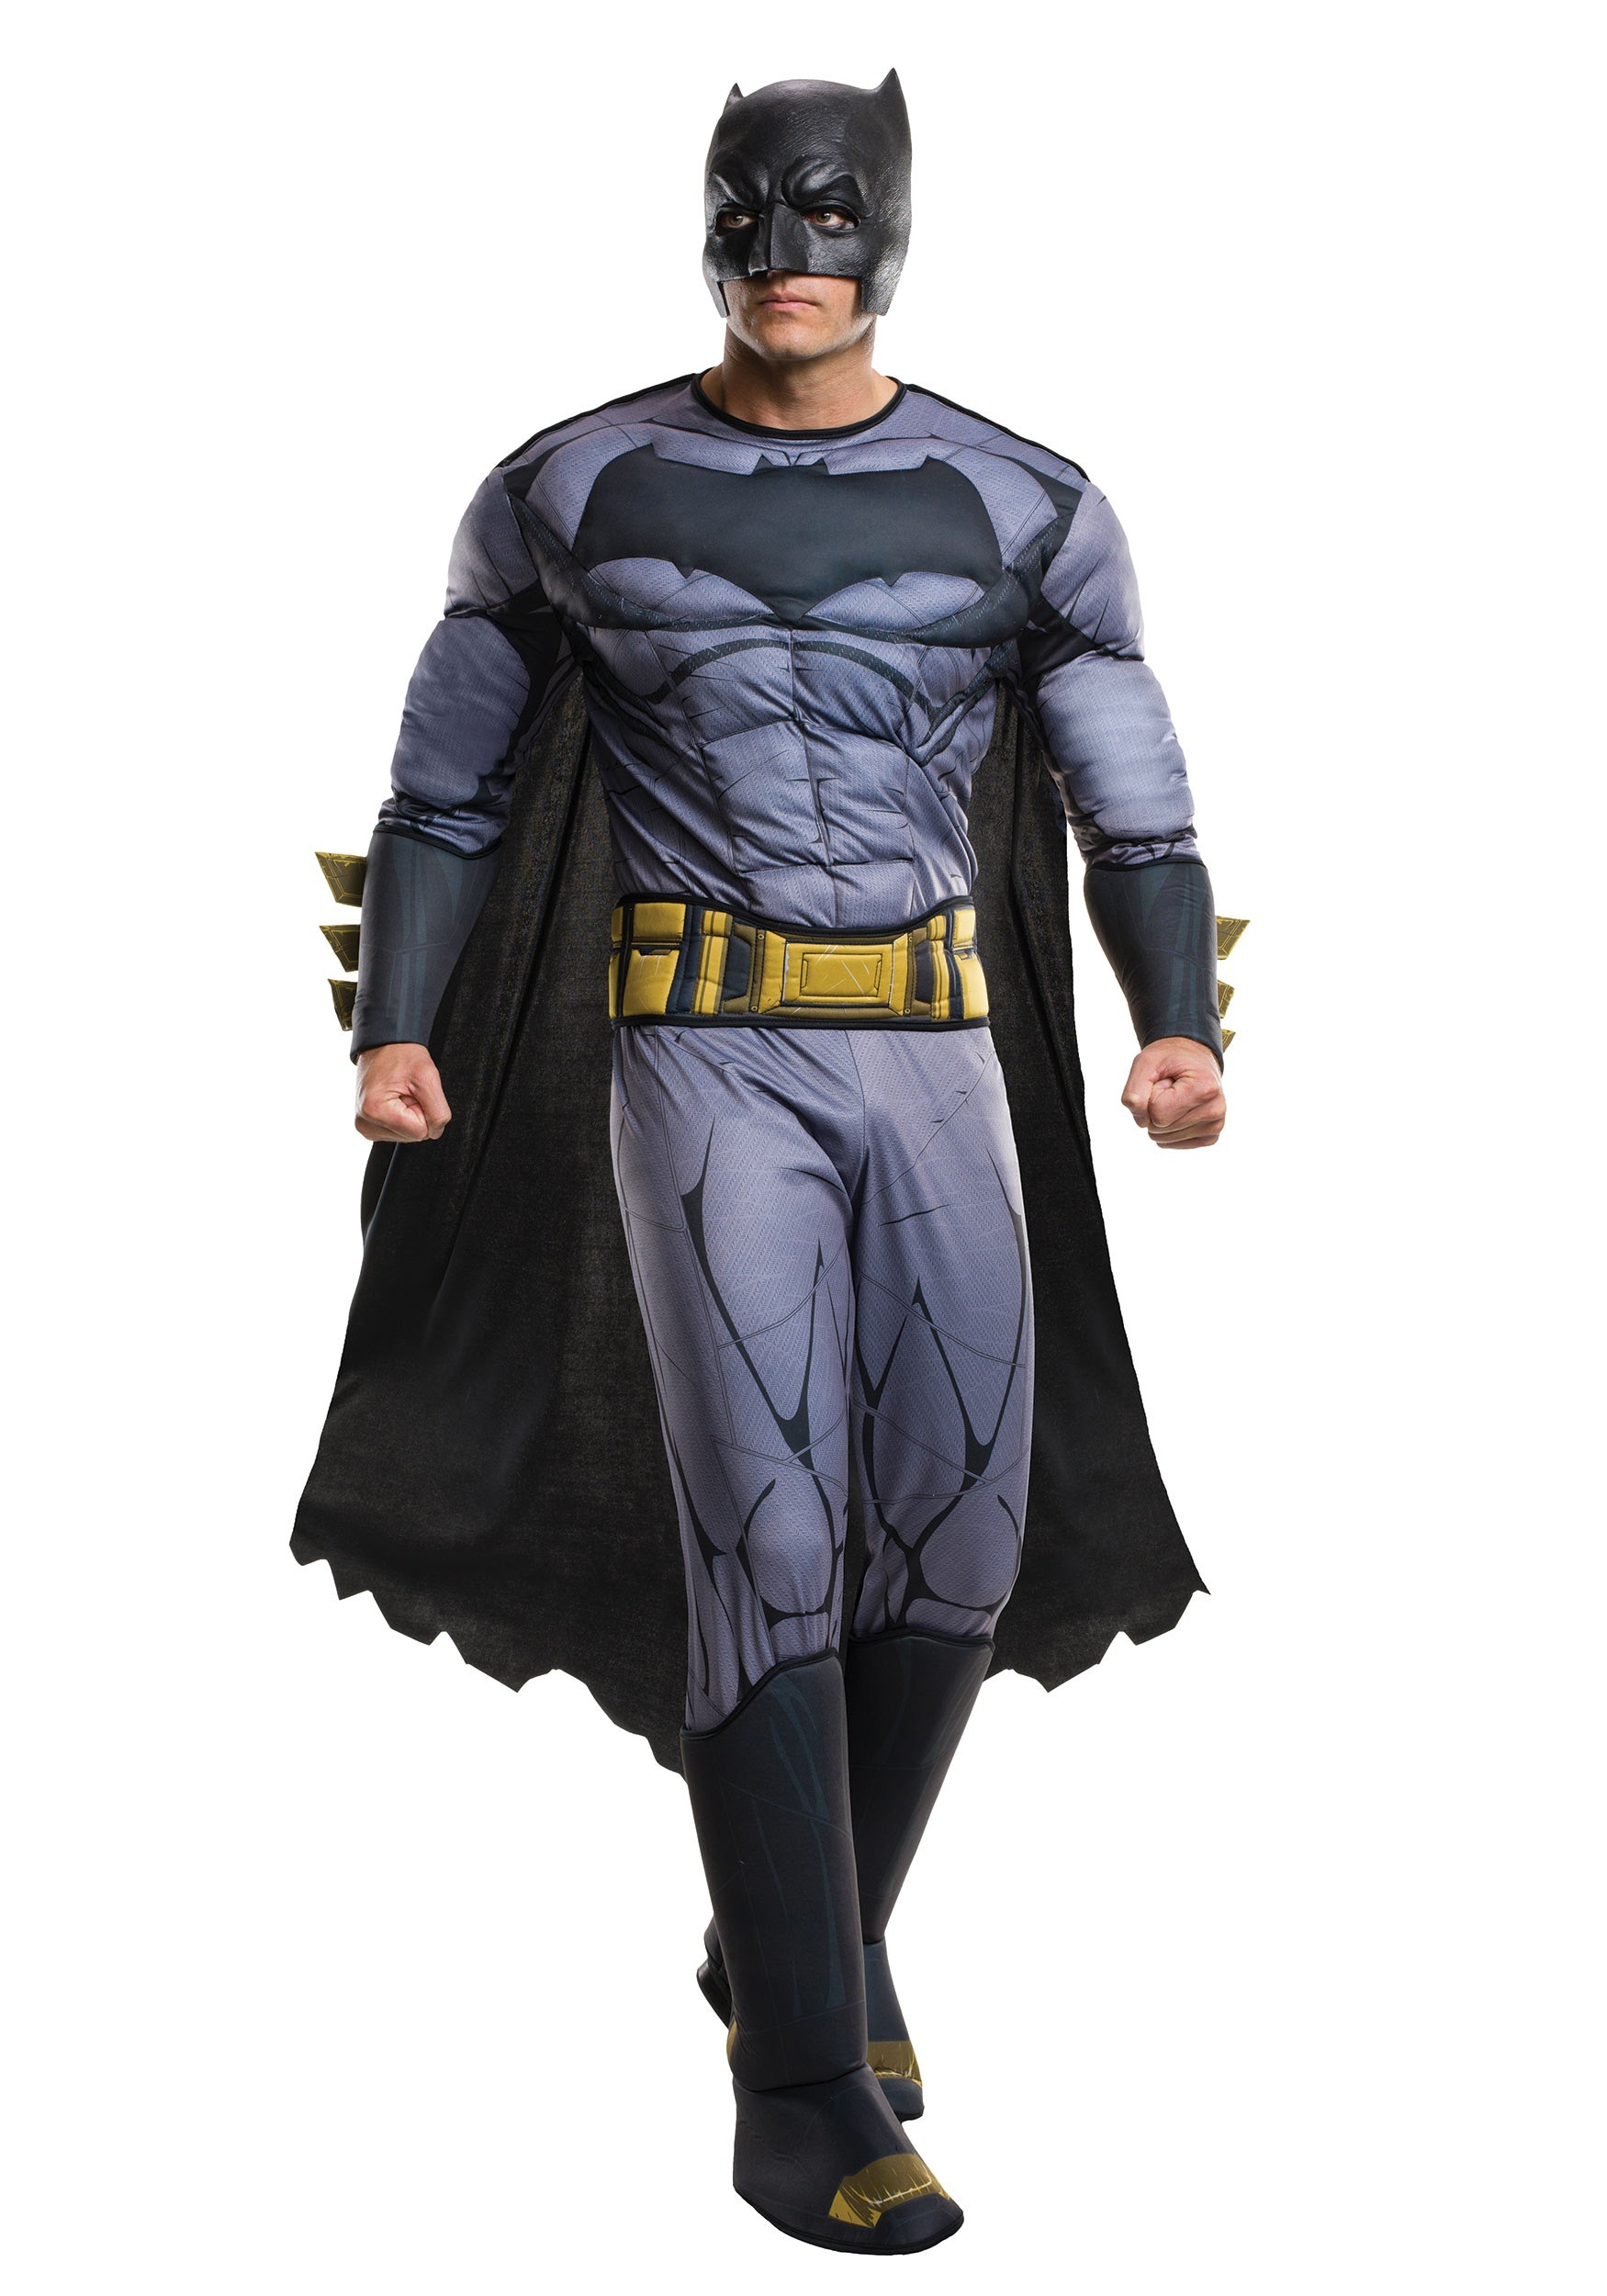 Batman Dawn of Justice Deluxe Menu0027s Costume  sc 1 st  Fun.com & Batman Gifts